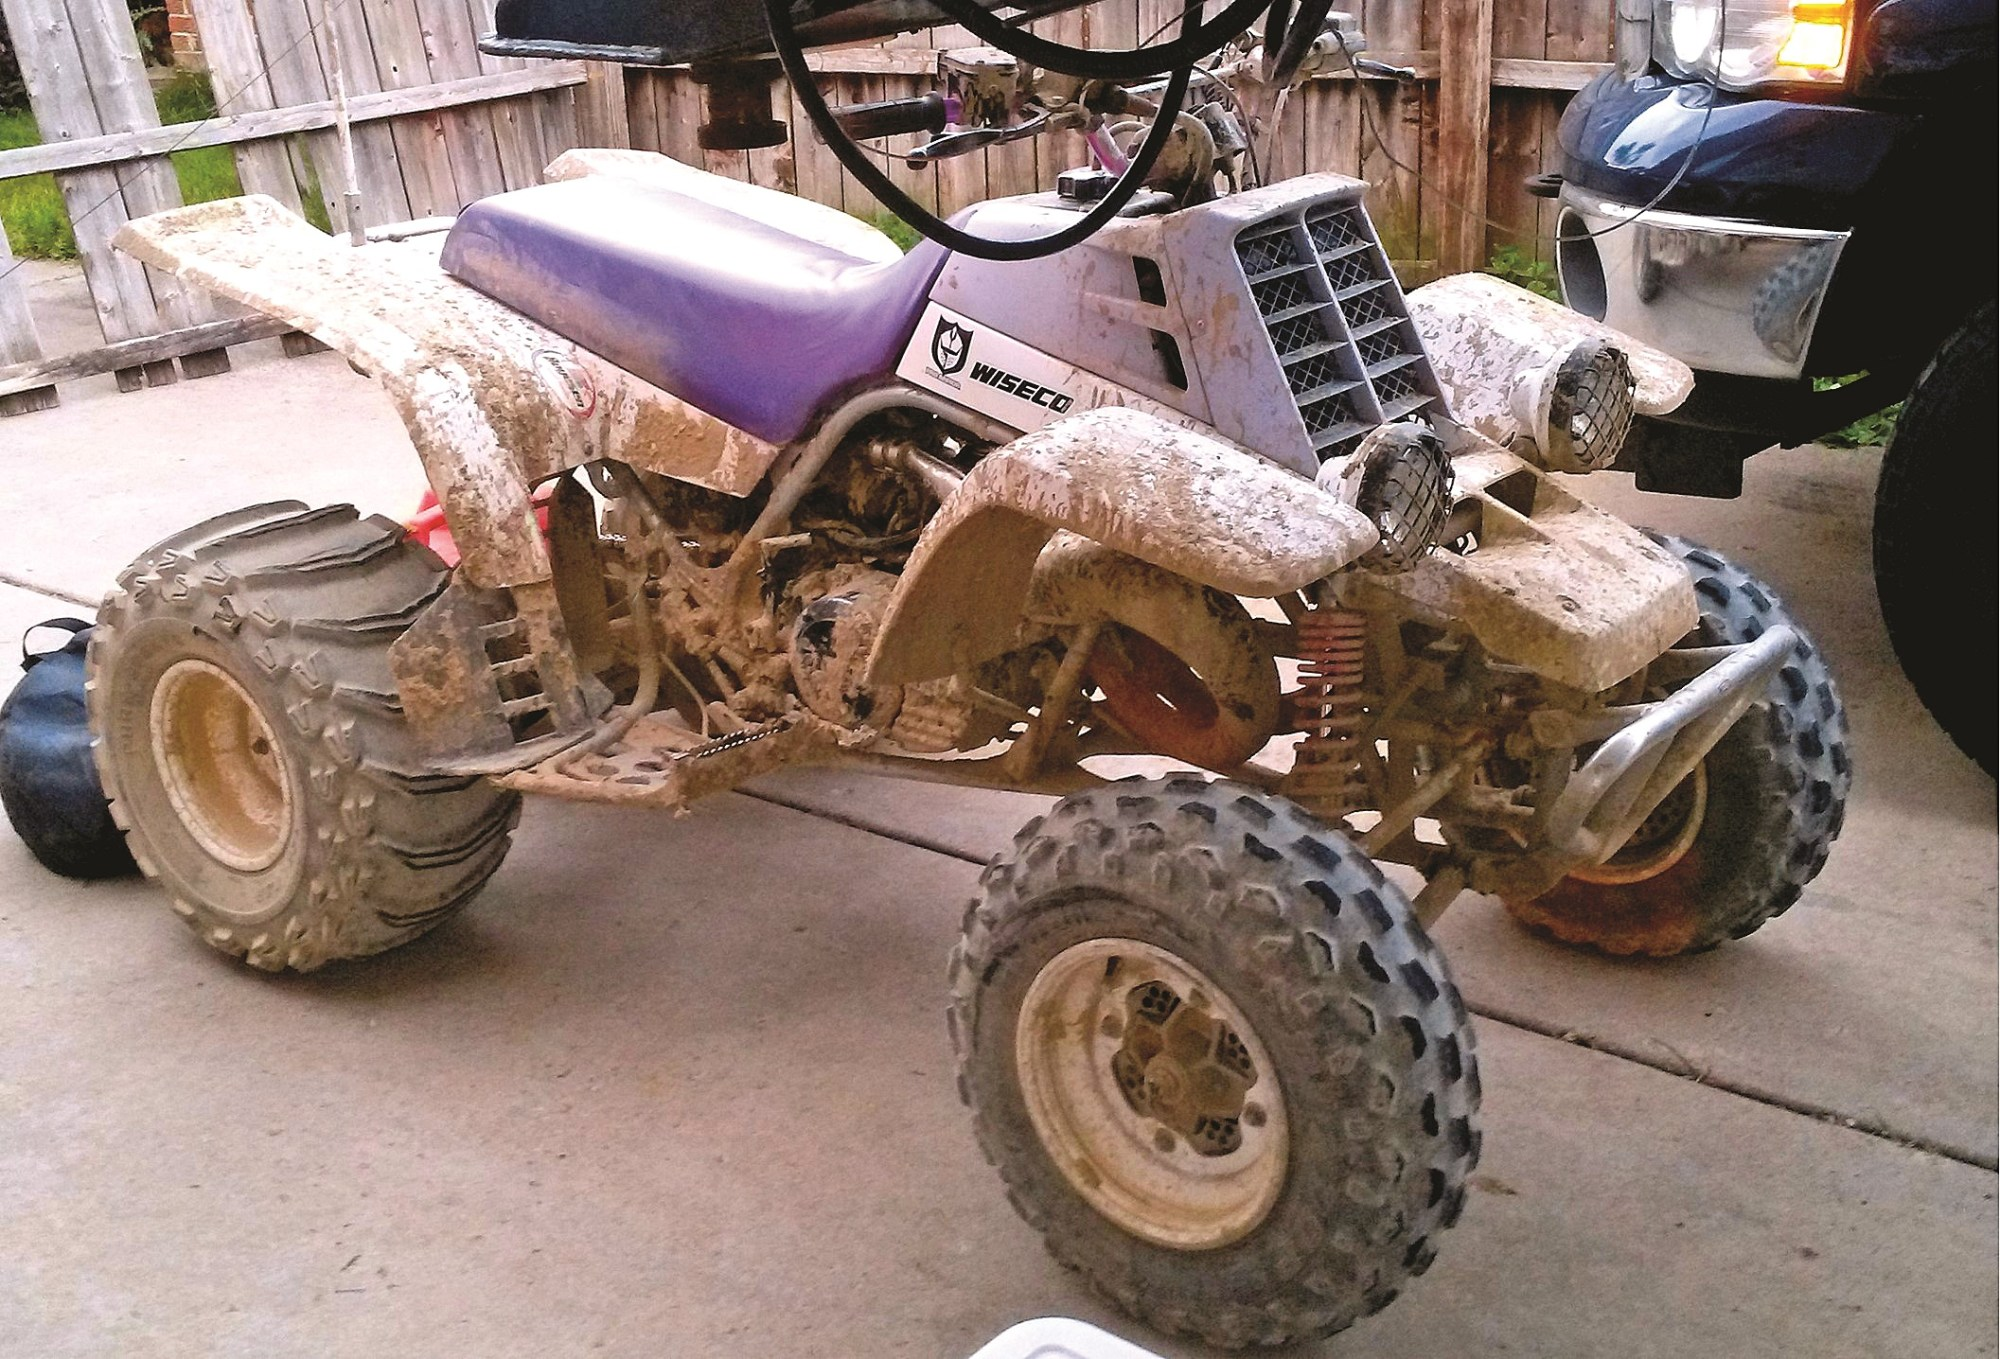 hight resolution of eric reno s 1993 banshee is not afraid of the mud at michigan s bundy hill riding park